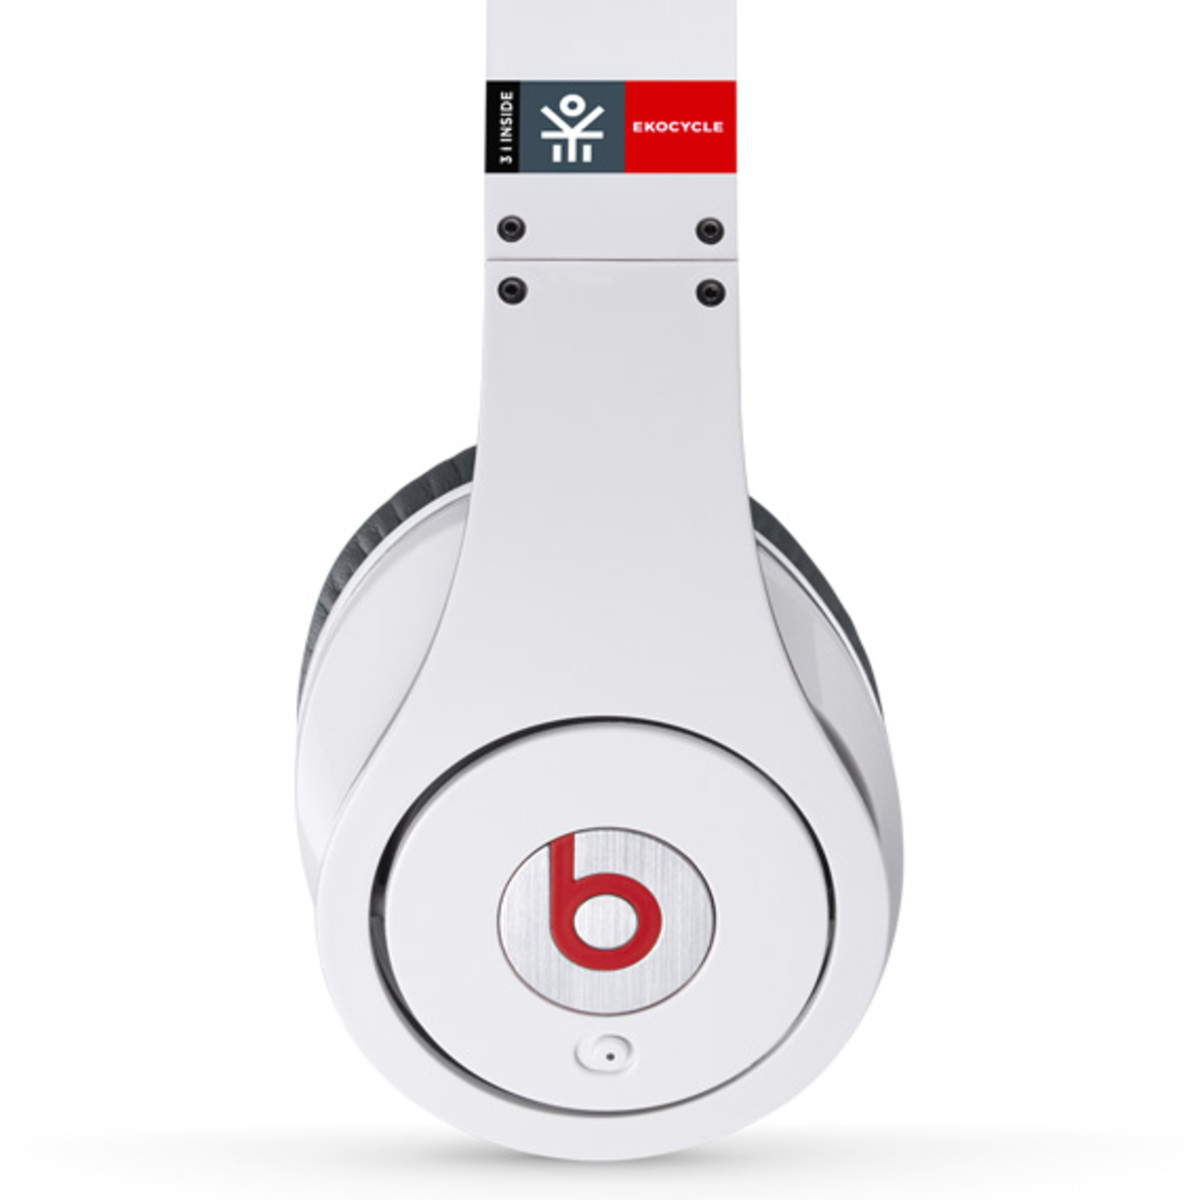 beats-by-dr-dre-studio-headphones-ekocycle-edition-william-coca-cola-07